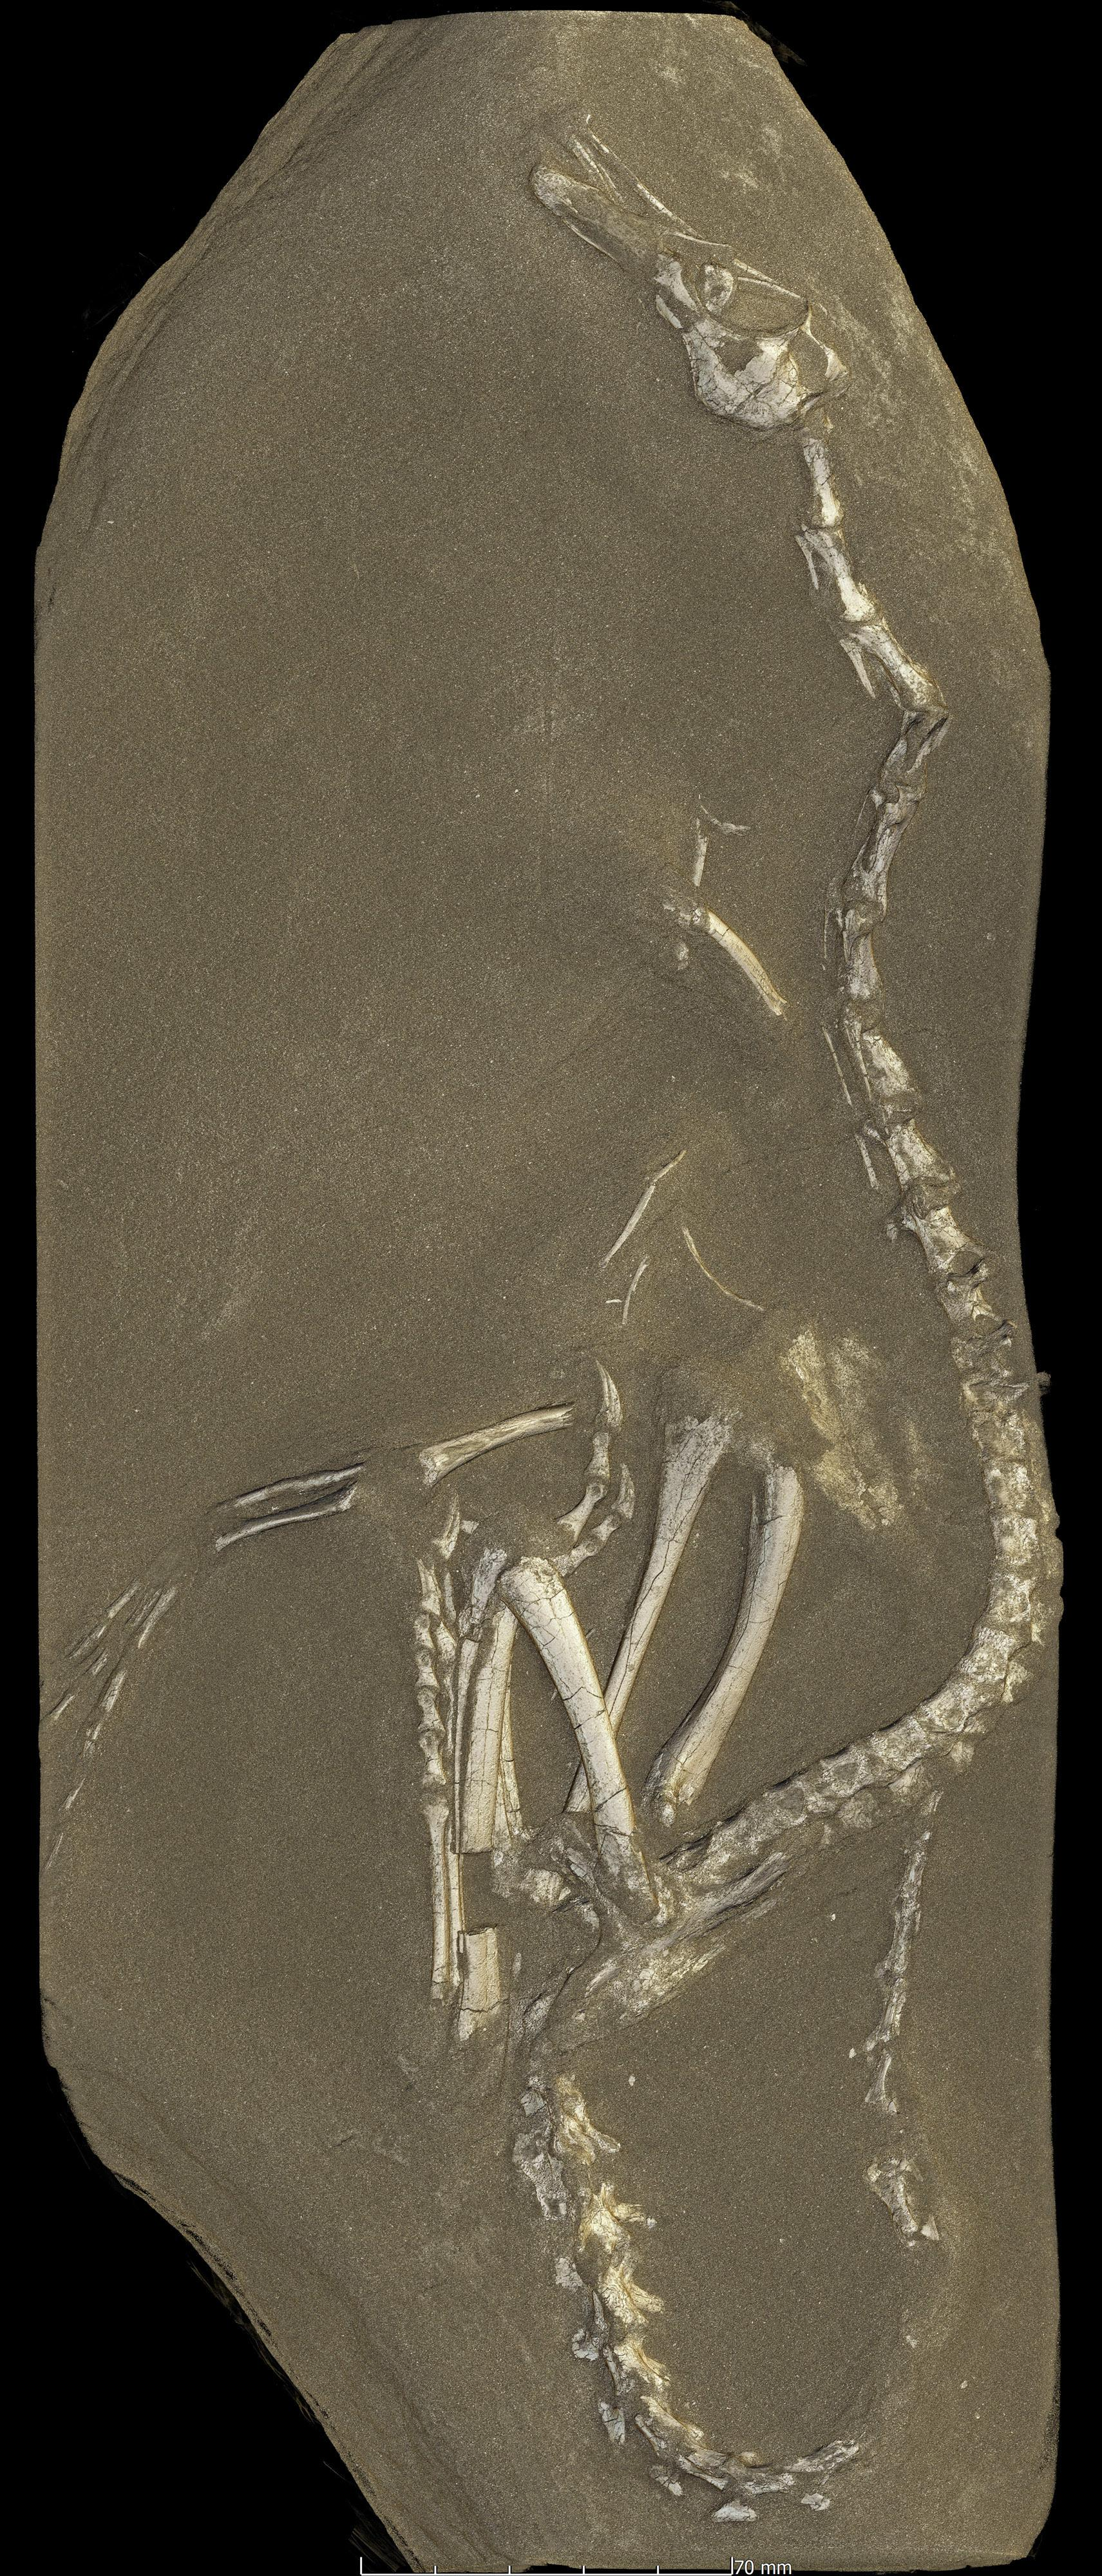 This image provided by the European Synchrotron Radiation Facility shows a view from a 3D rendering of the Halszkaraptor escuilliei dinosaur fossil computed from data obtained at the ESRF in Grenoble, France. The creature, about 18 inches (45 centimeters) tall, had a bill like a duck but teeth like a croc's, a swan-like neck and killer claws. (Paul Tafforeau/ESRF via AP)